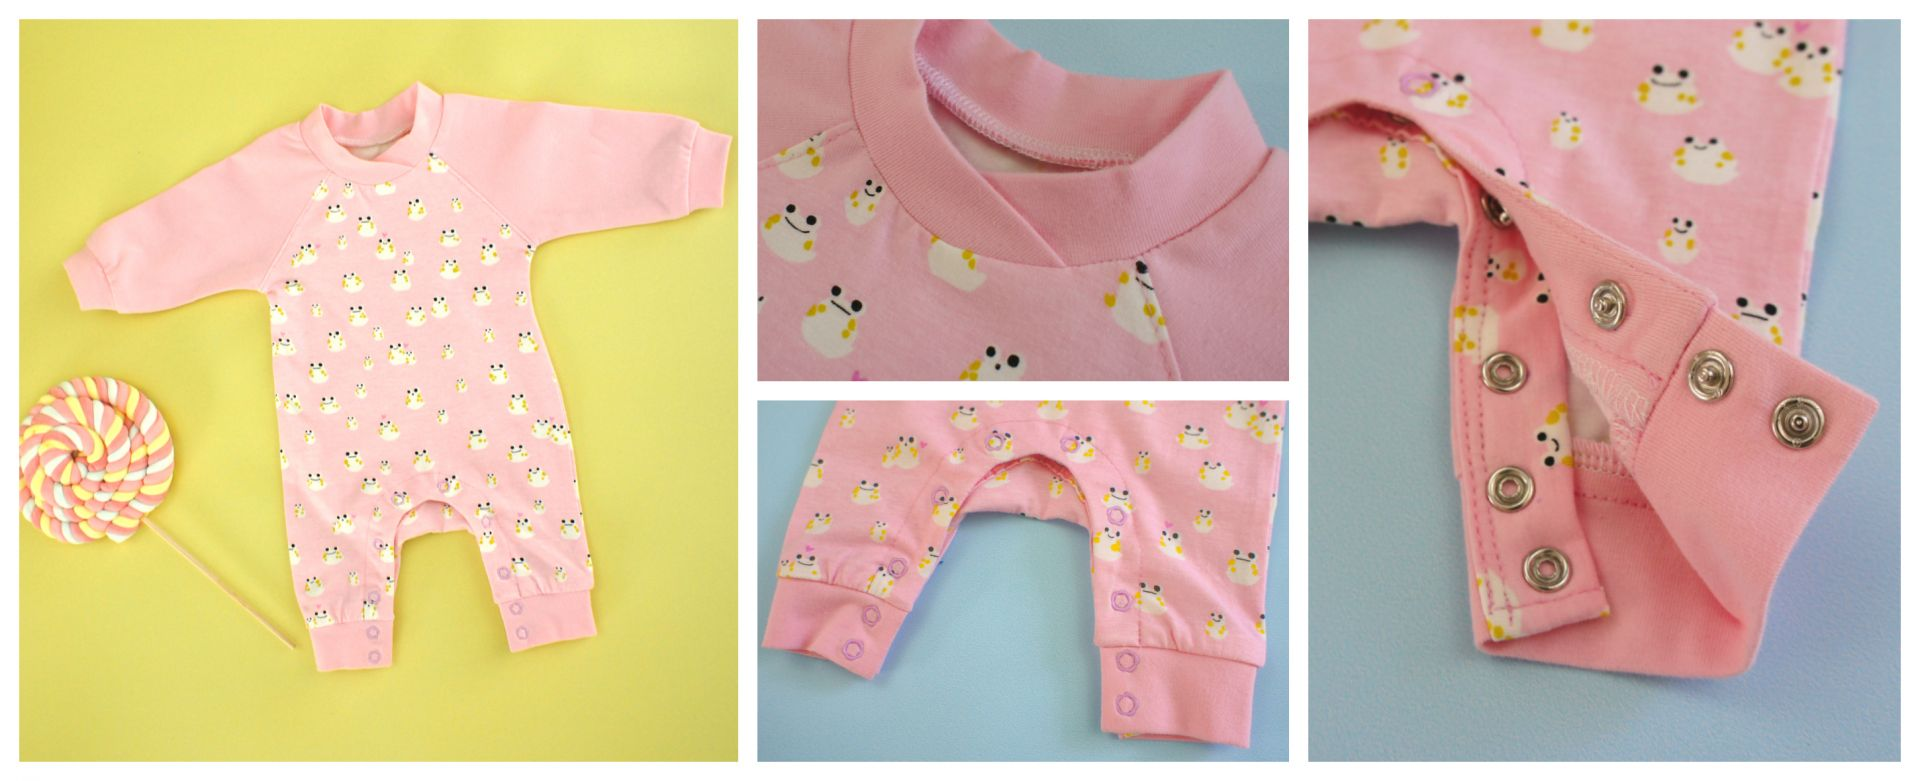 Baby Romper PDF Sewing Pattern <span>Pink pretty baby romper. Has snaps, long sleeves, cuffs and a bound neckline.Frocks and Frolics pdf sewing pattern.</span>